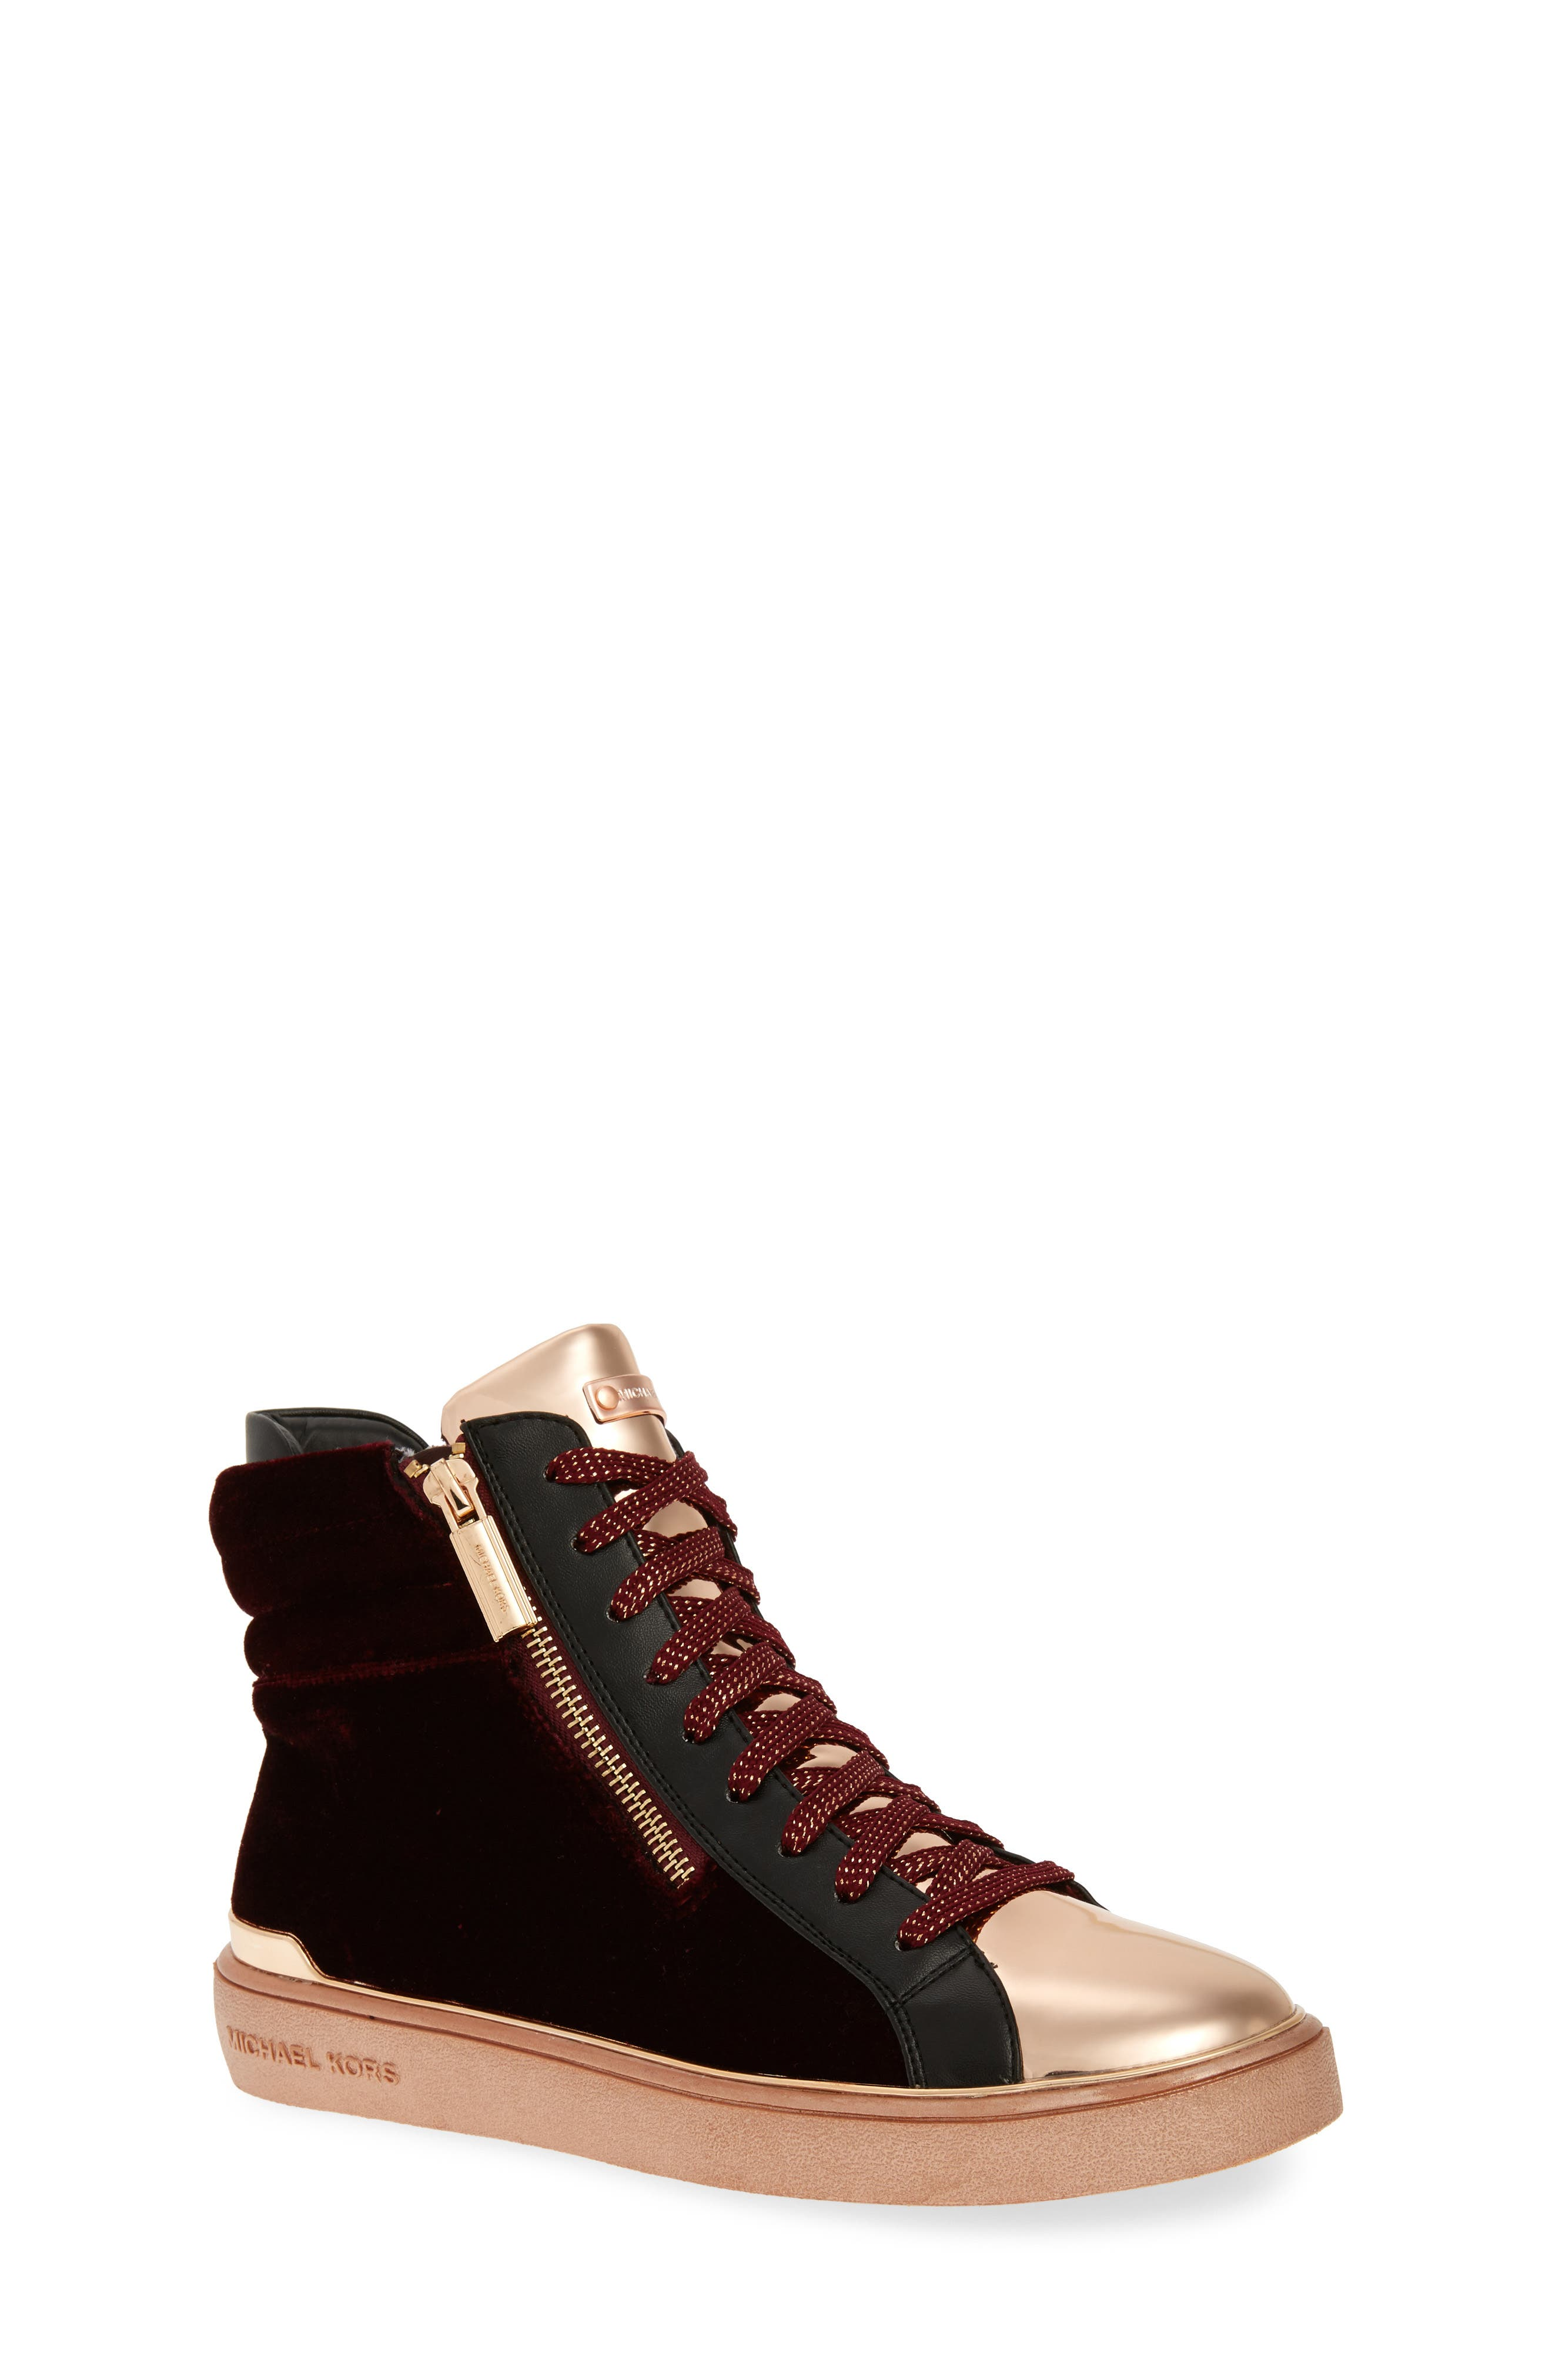 MICHAEL MICHAEL KORS Ivy Blue High Top Sneaker